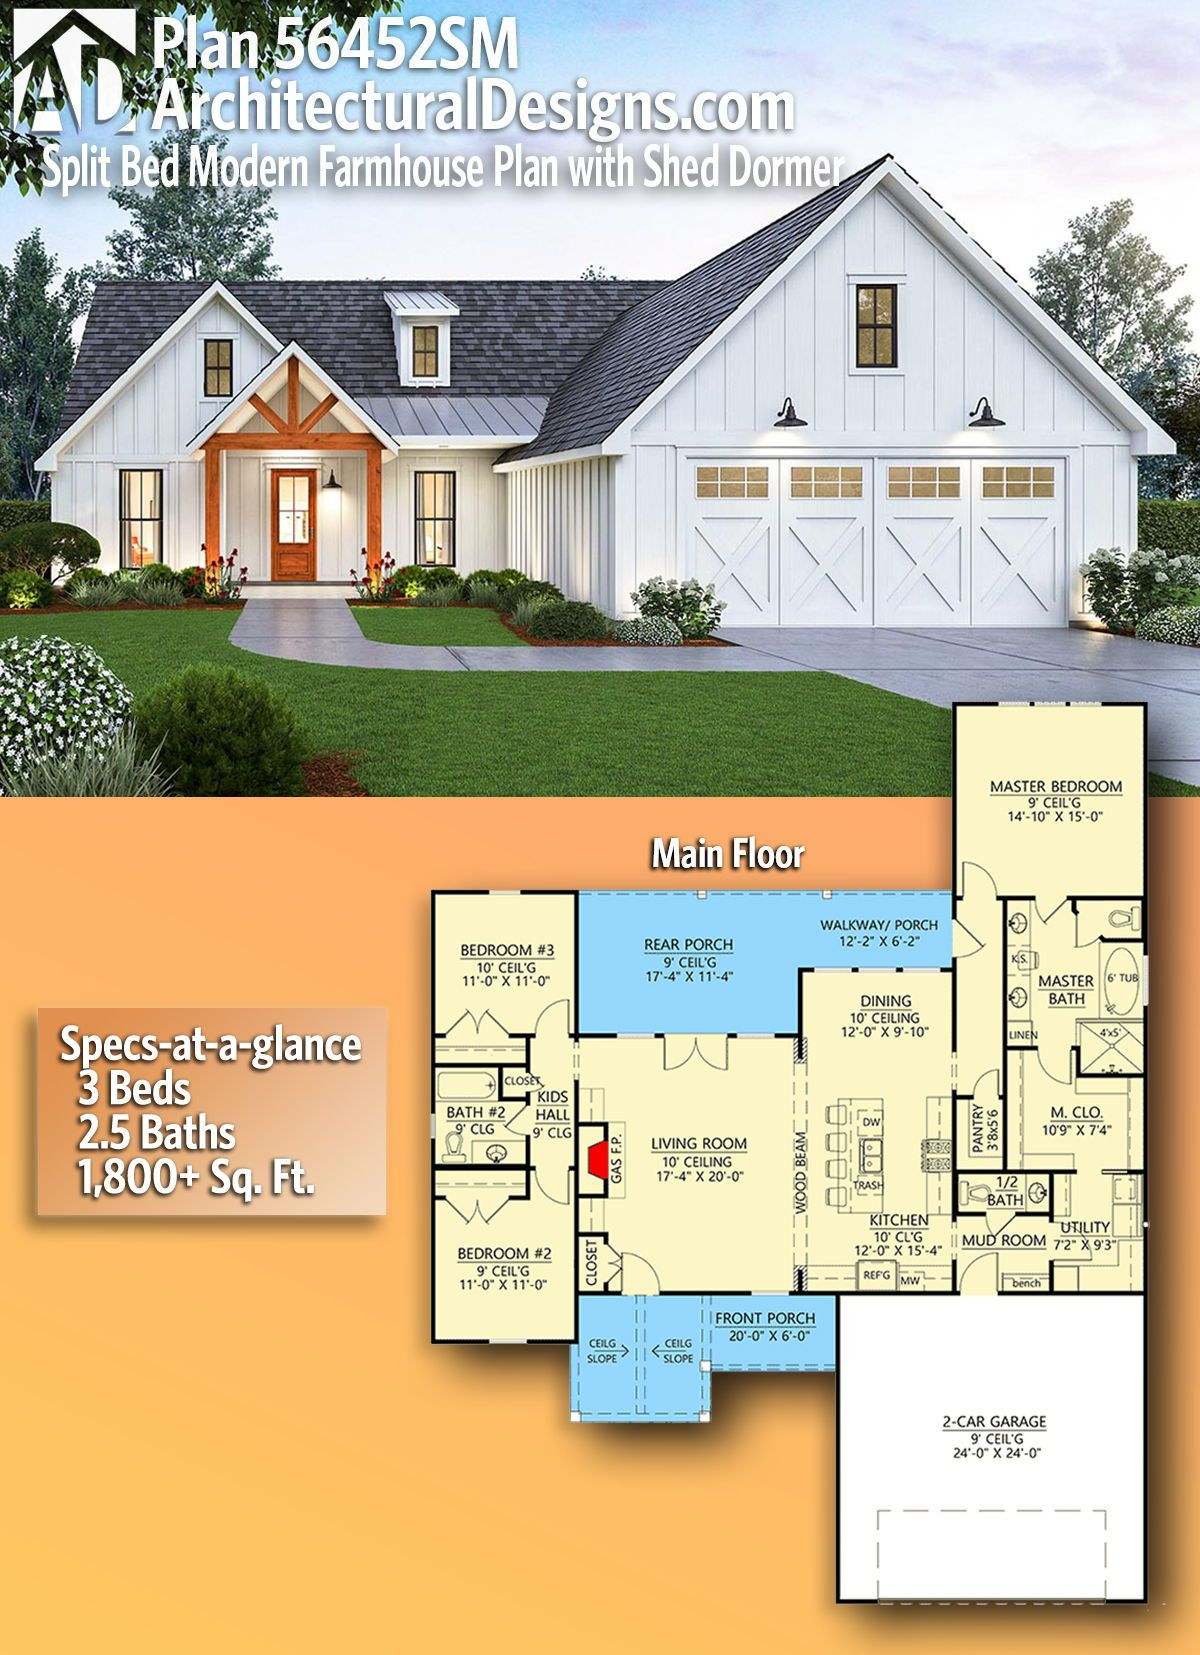 Plan 56452SM: Split Bed Modern Farmhouse Plan with Shed Dormer